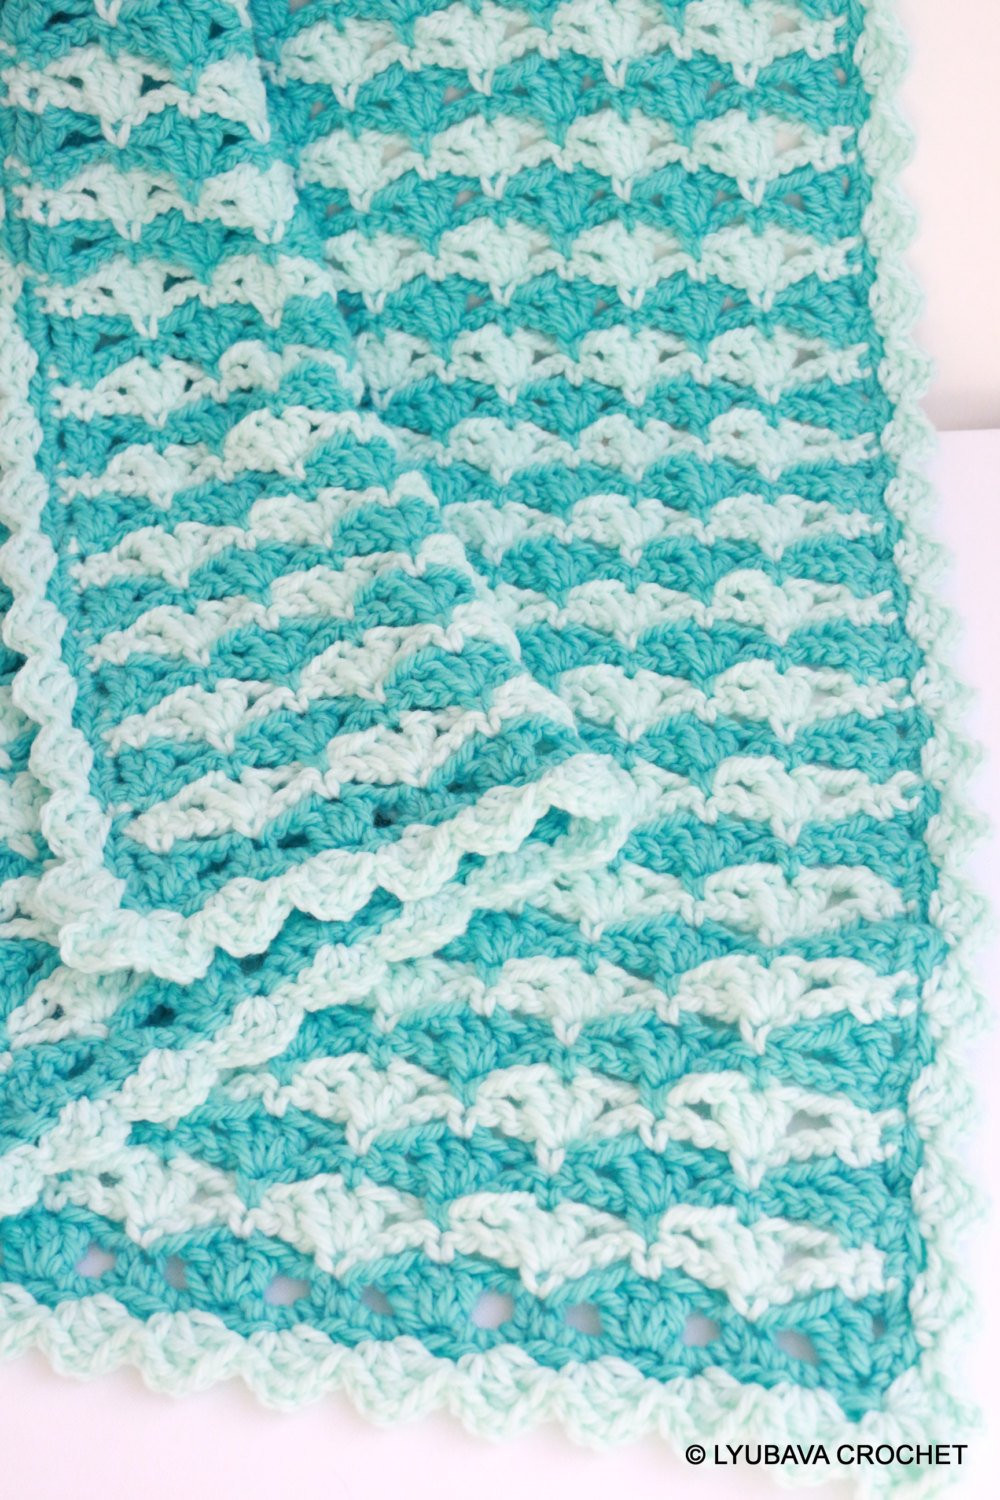 Baby Boy Crochet Blanket Patterns Inspirational Turquoise Baby Blanket Chunky Crochet Blanket for Baby Boy Of Baby Boy Crochet Blanket Patterns Beautiful Marvelous Monkey Blankets Free Crochet Patterns